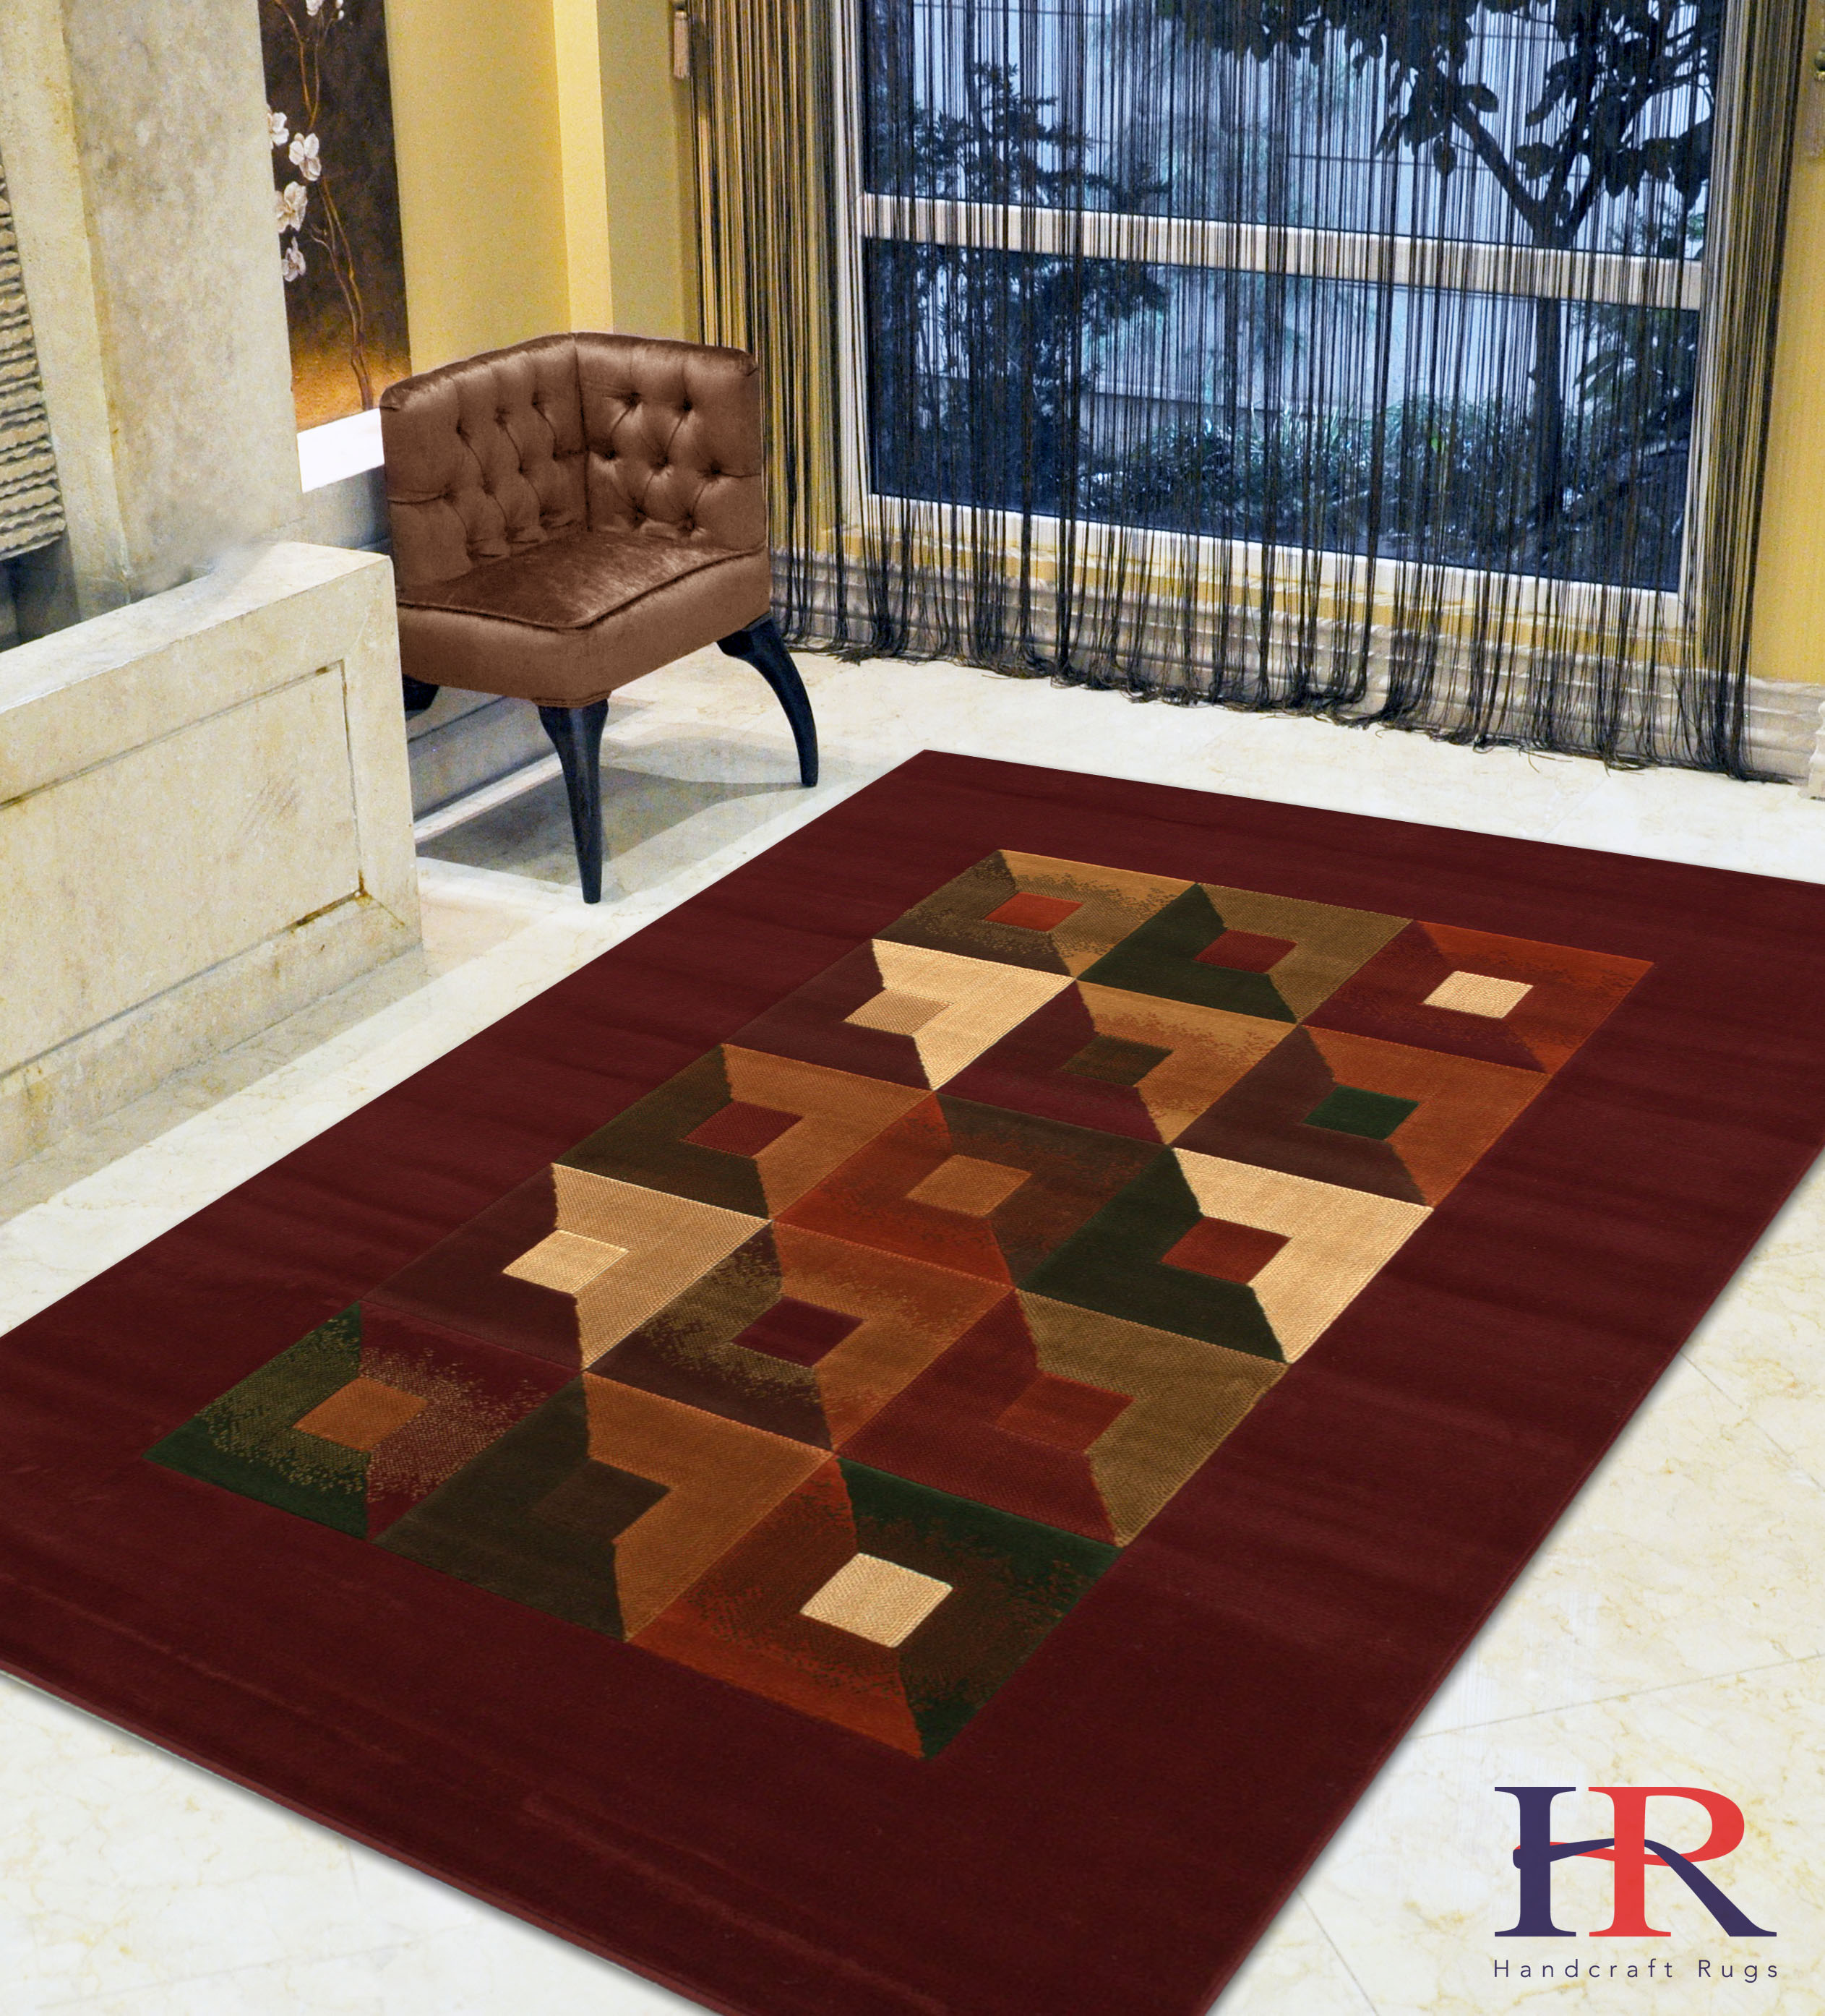 Handcraft Rugs Beige, Chocolate, Brown, Modern Rectangular Geometric Pattern Area Rug... by Doormats